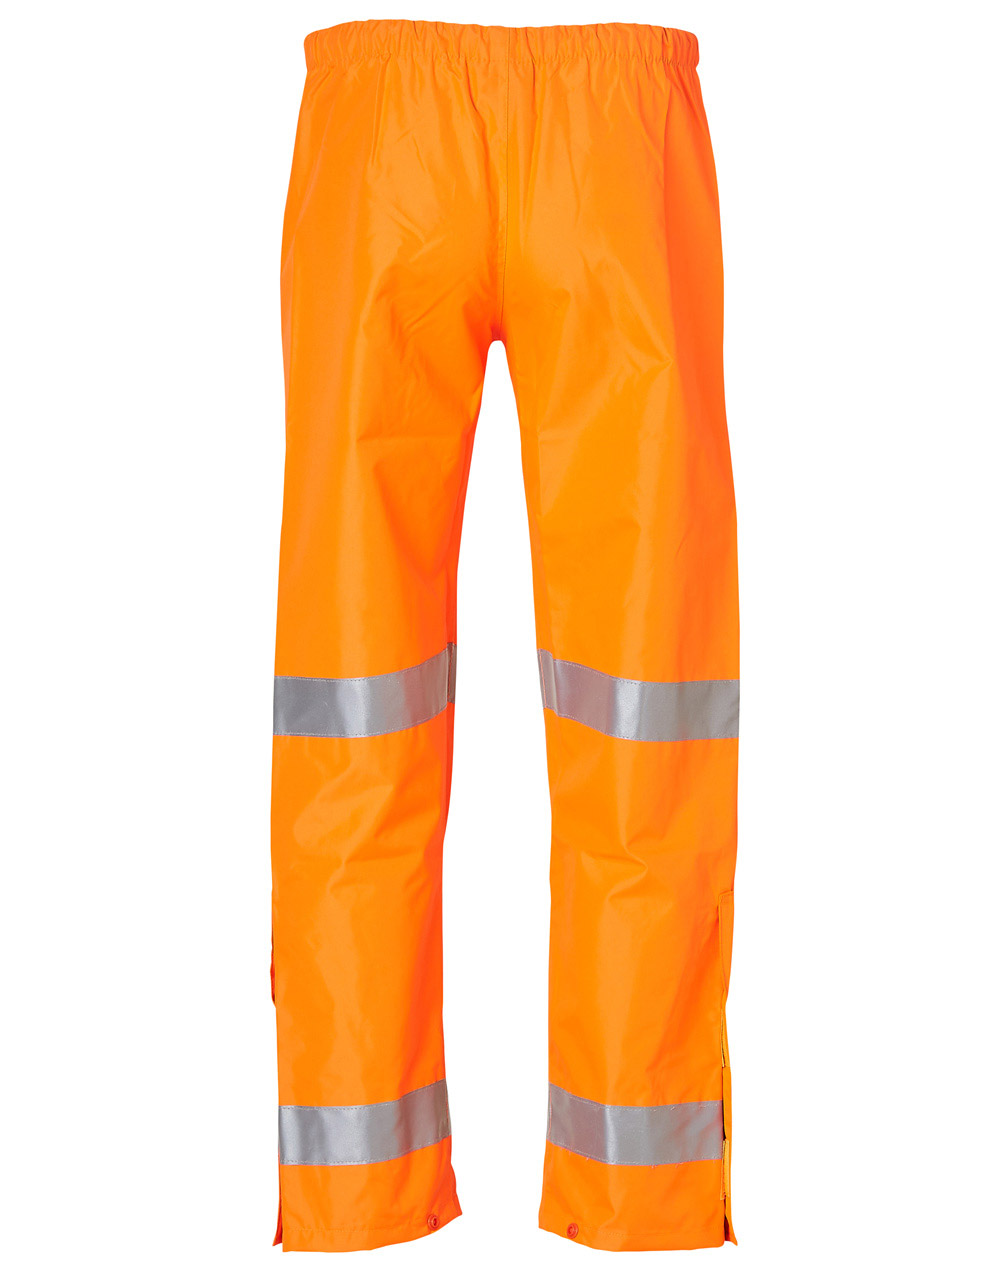 https://s3-ap-southeast-1.amazonaws.com/ws-imgs/WORKWEAR/HP01A_Orange_Back.jpg